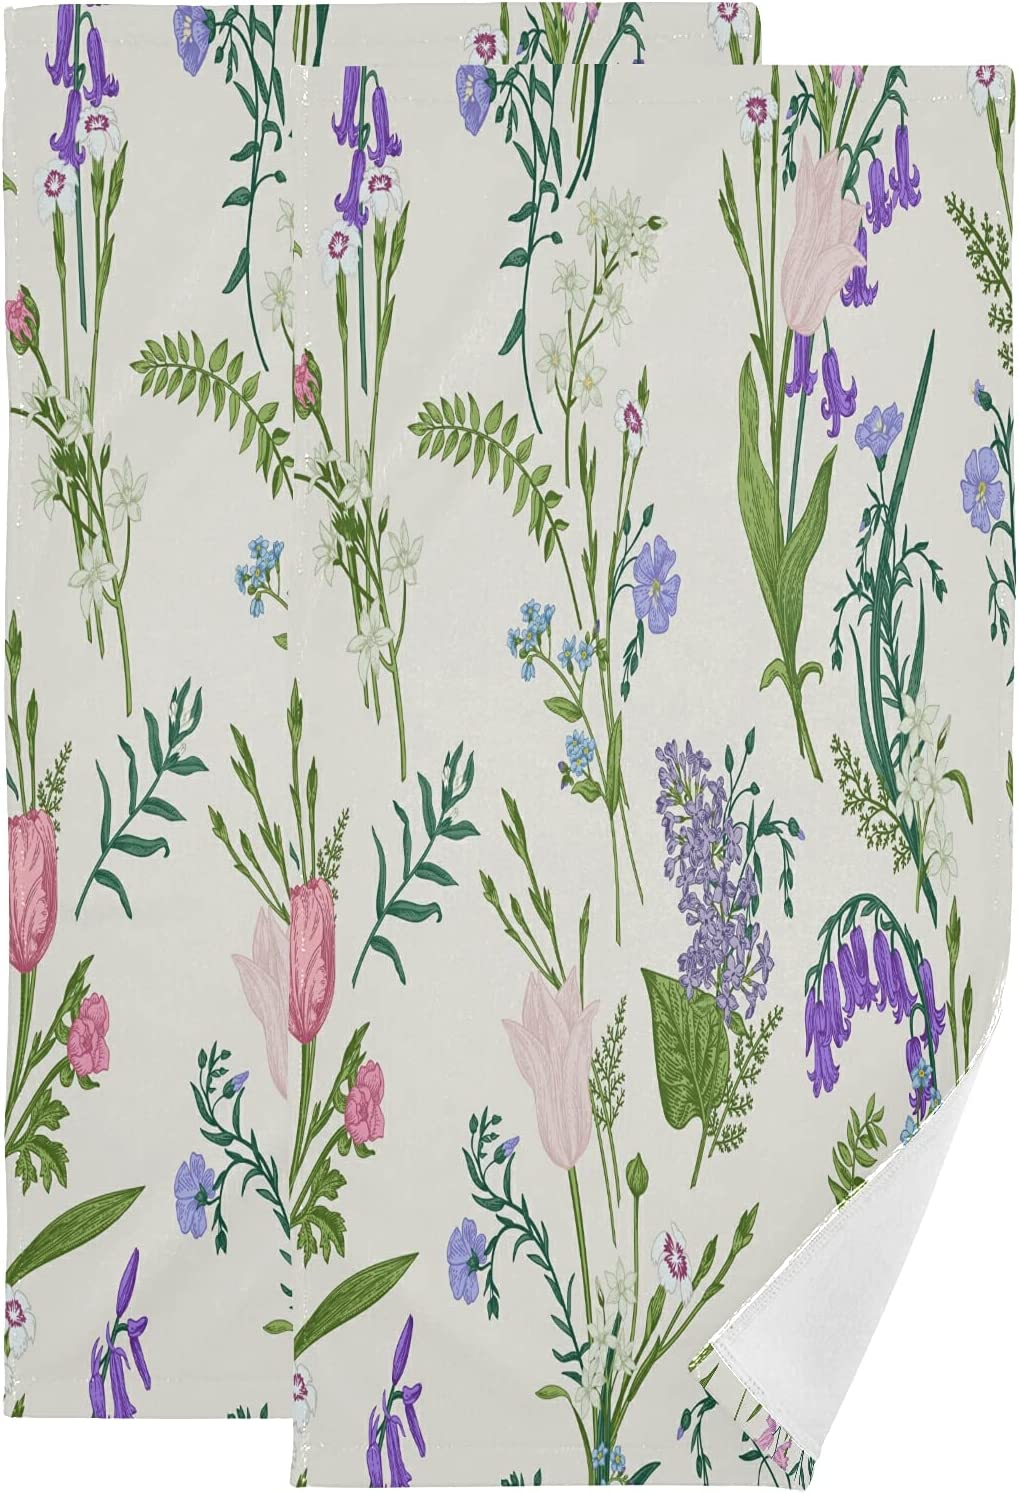 ALAZA Free Shipping New Botanical Wild Lavender Flowers Absorbent Max 48% OFF Hand Soft Towels